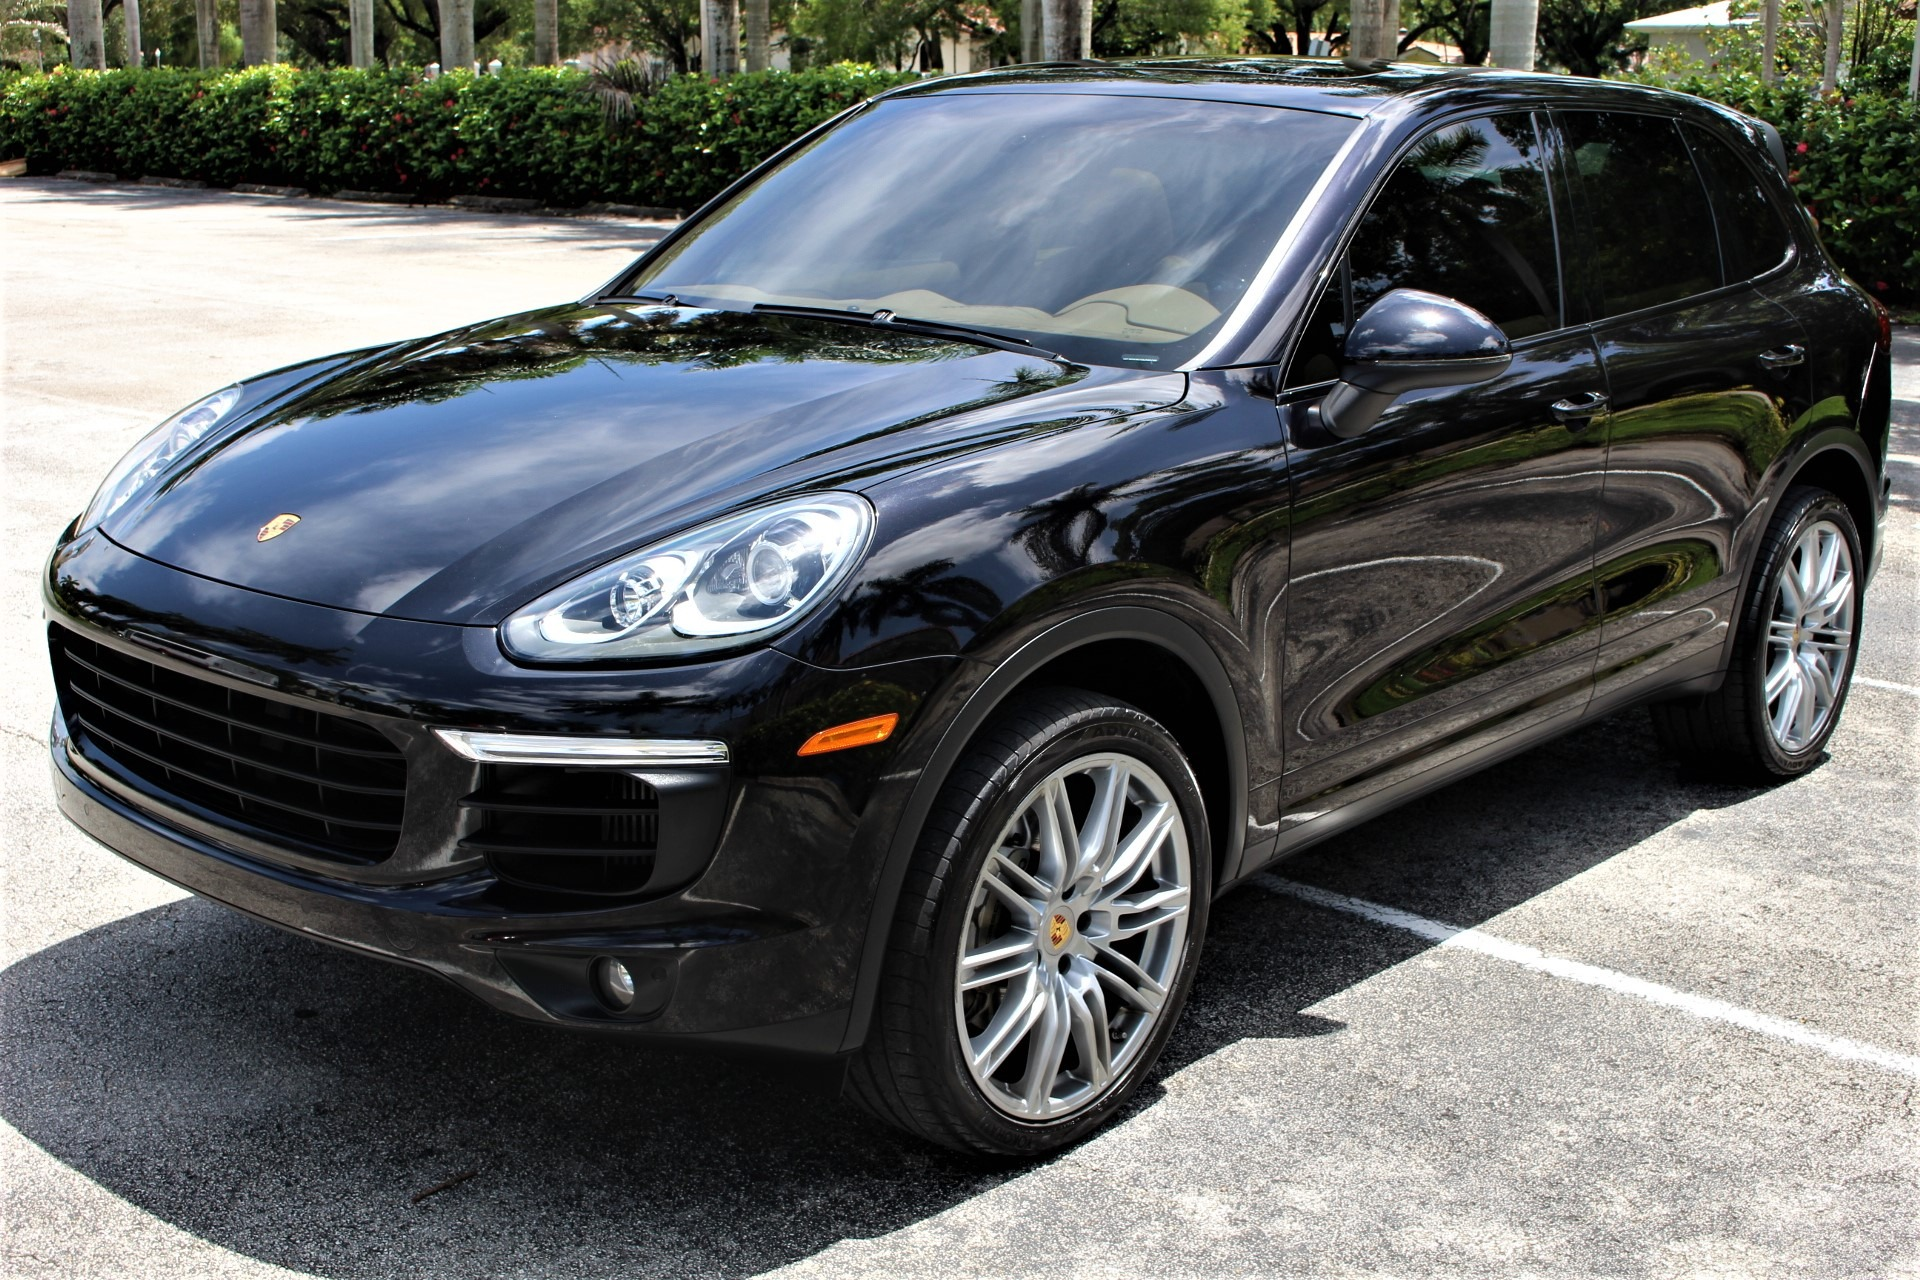 Used 2016 Porsche Cayenne S for sale $43,850 at The Gables Sports Cars in Miami FL 33146 4